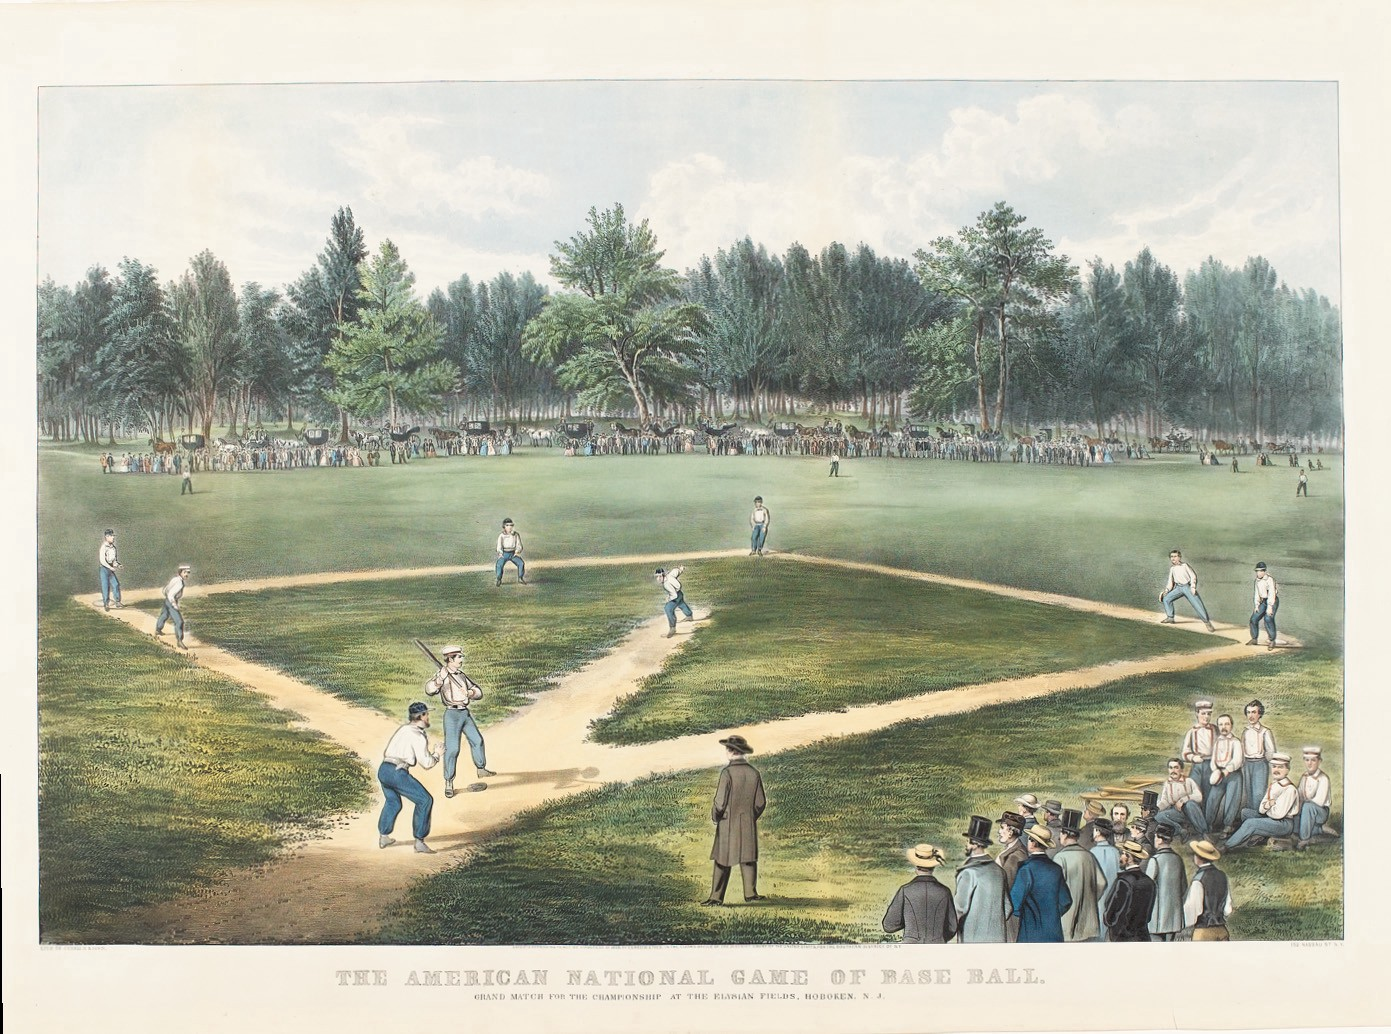 The American National Game Of Base Ball Currier And Ives 1866